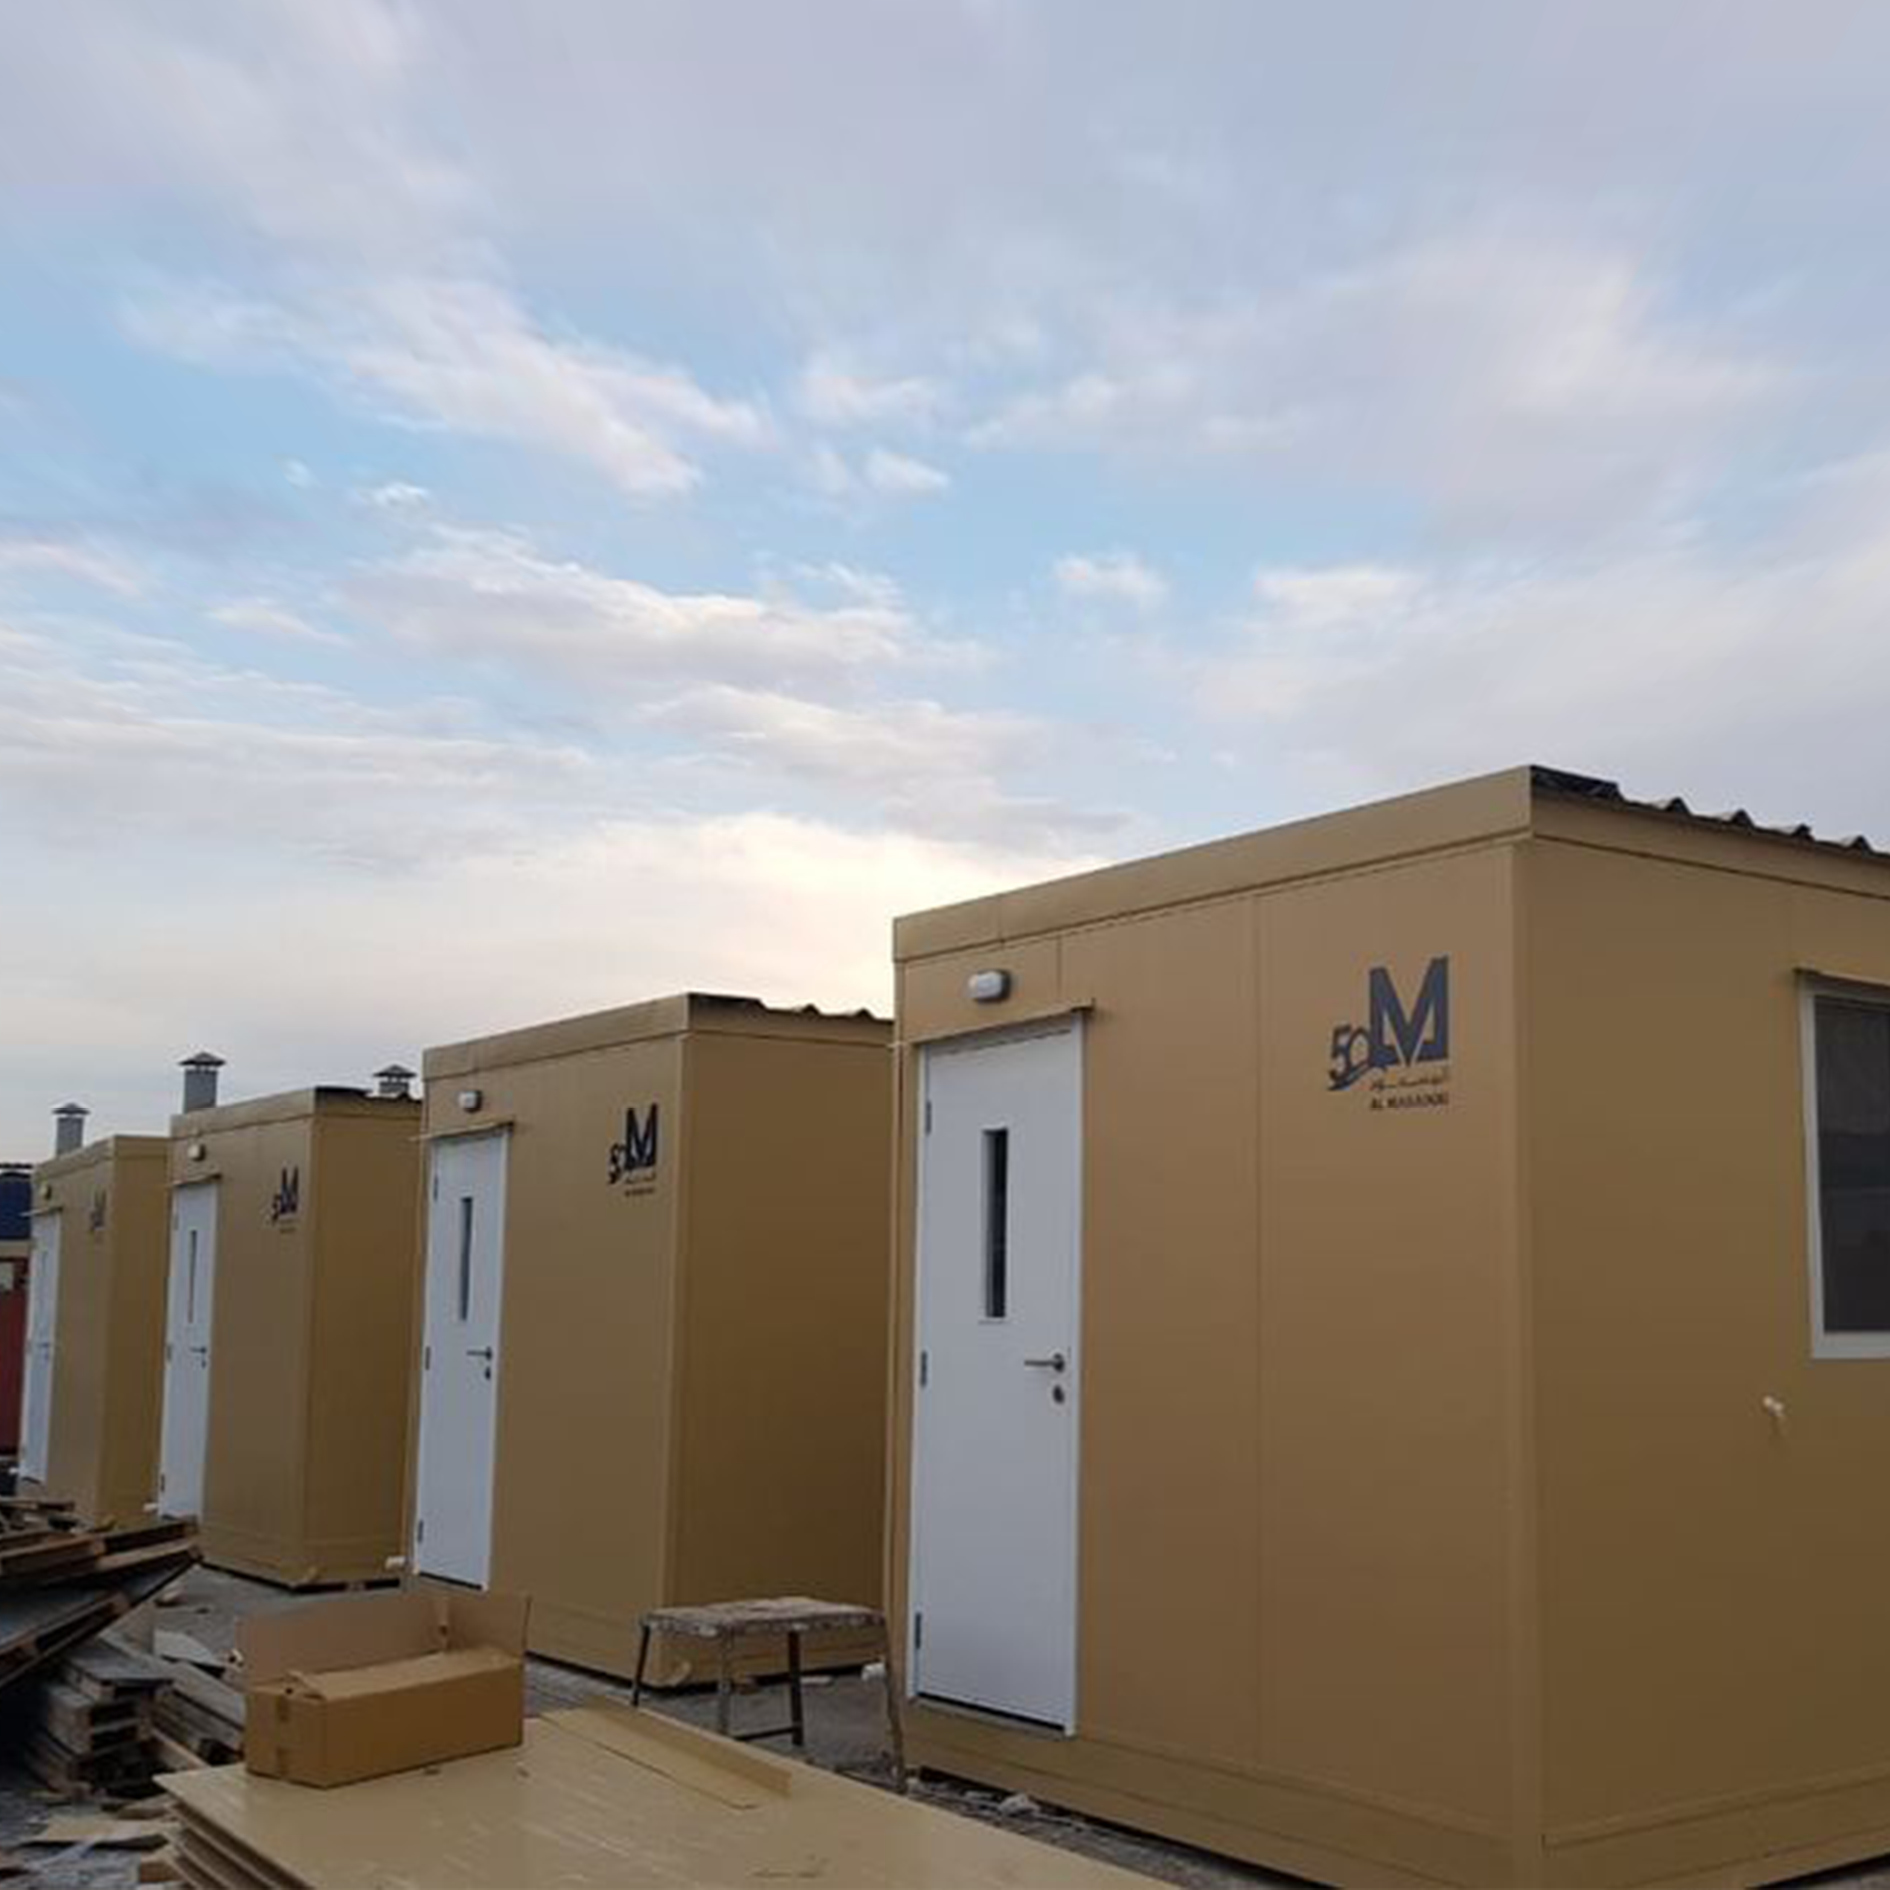 Al Masaood Bergum successfully builds specialized accommodation facility in shortest time possible